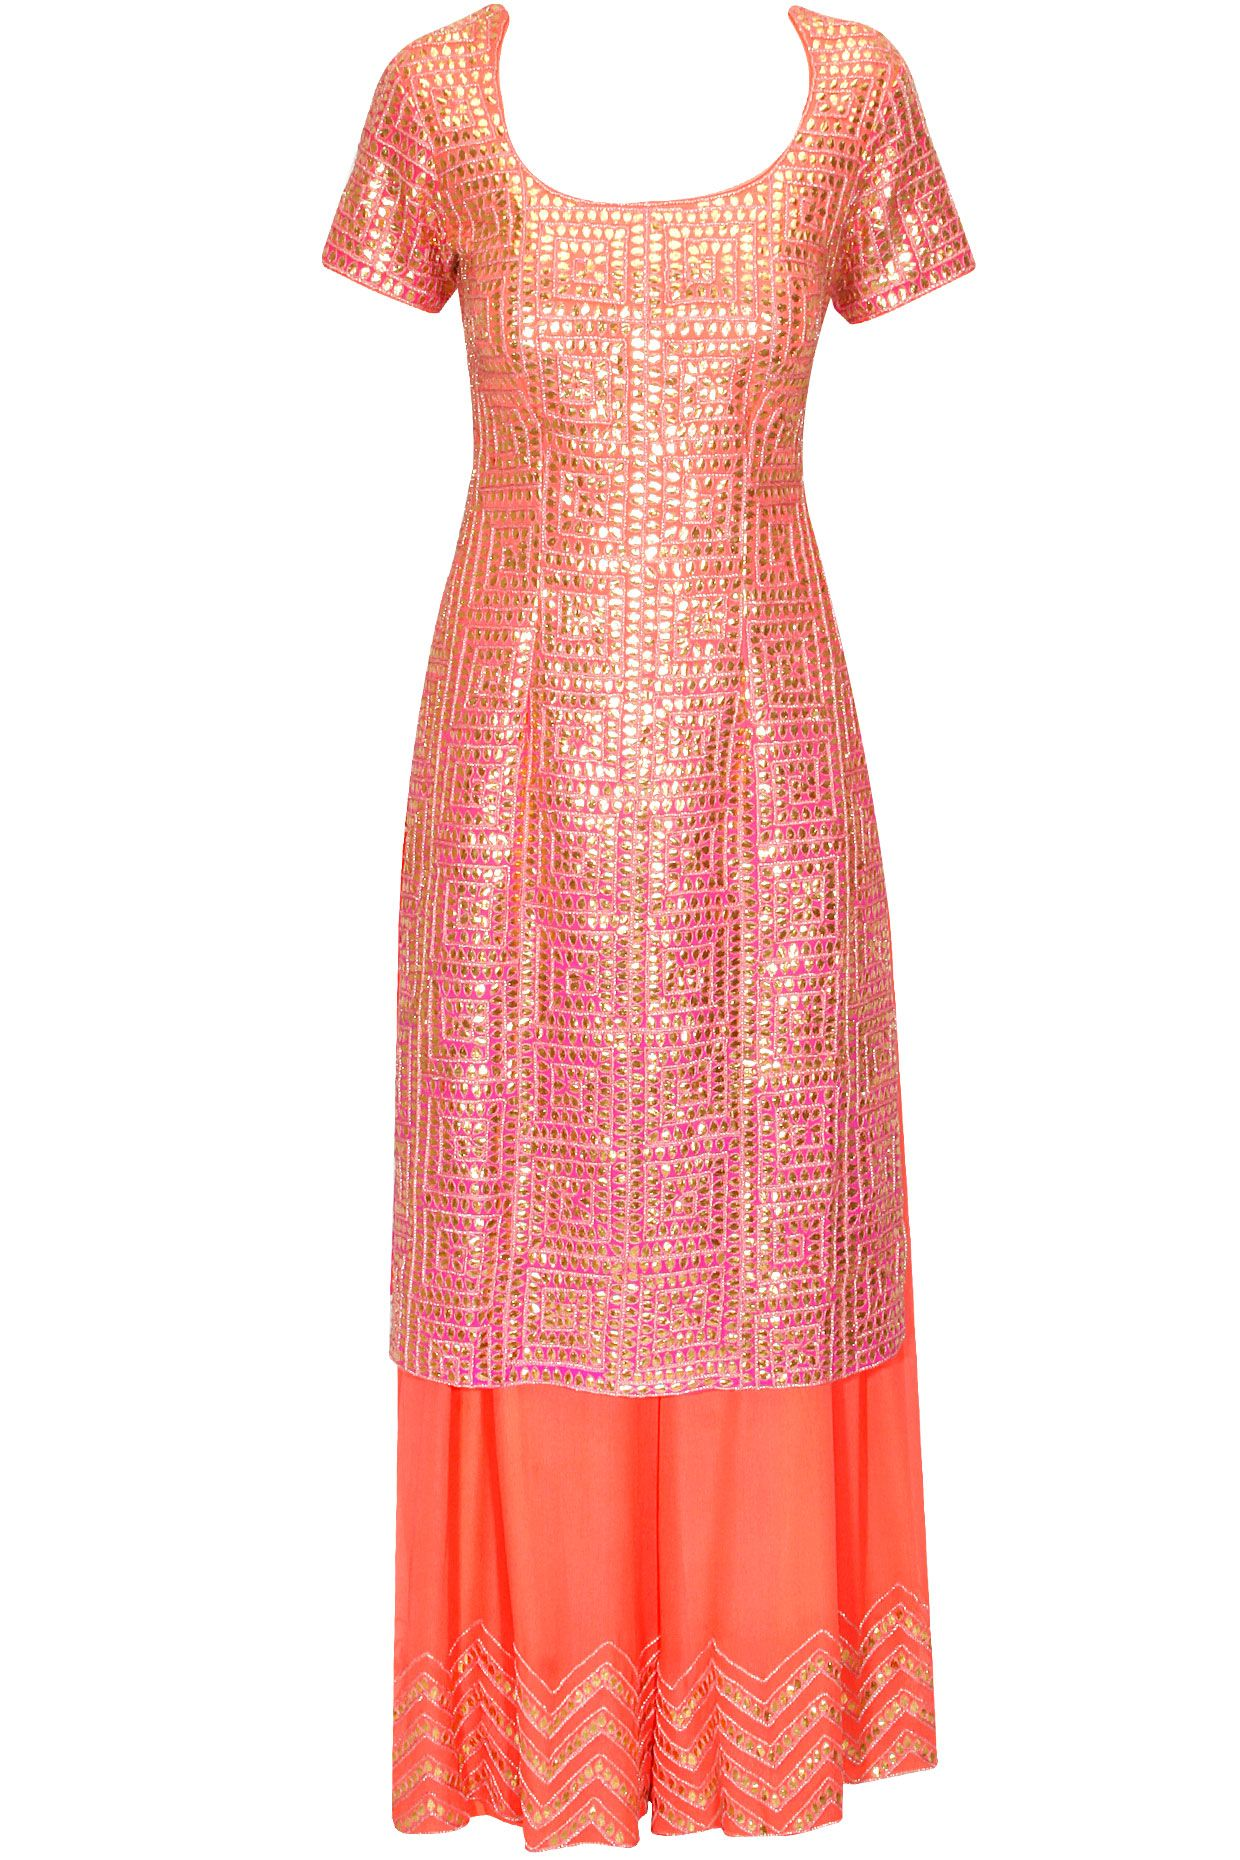 09cf7d7b277a Orange and pink shaded gota patti embroidered long kurti with palazzo pants available  only at Pernia s Pop Up Shop.